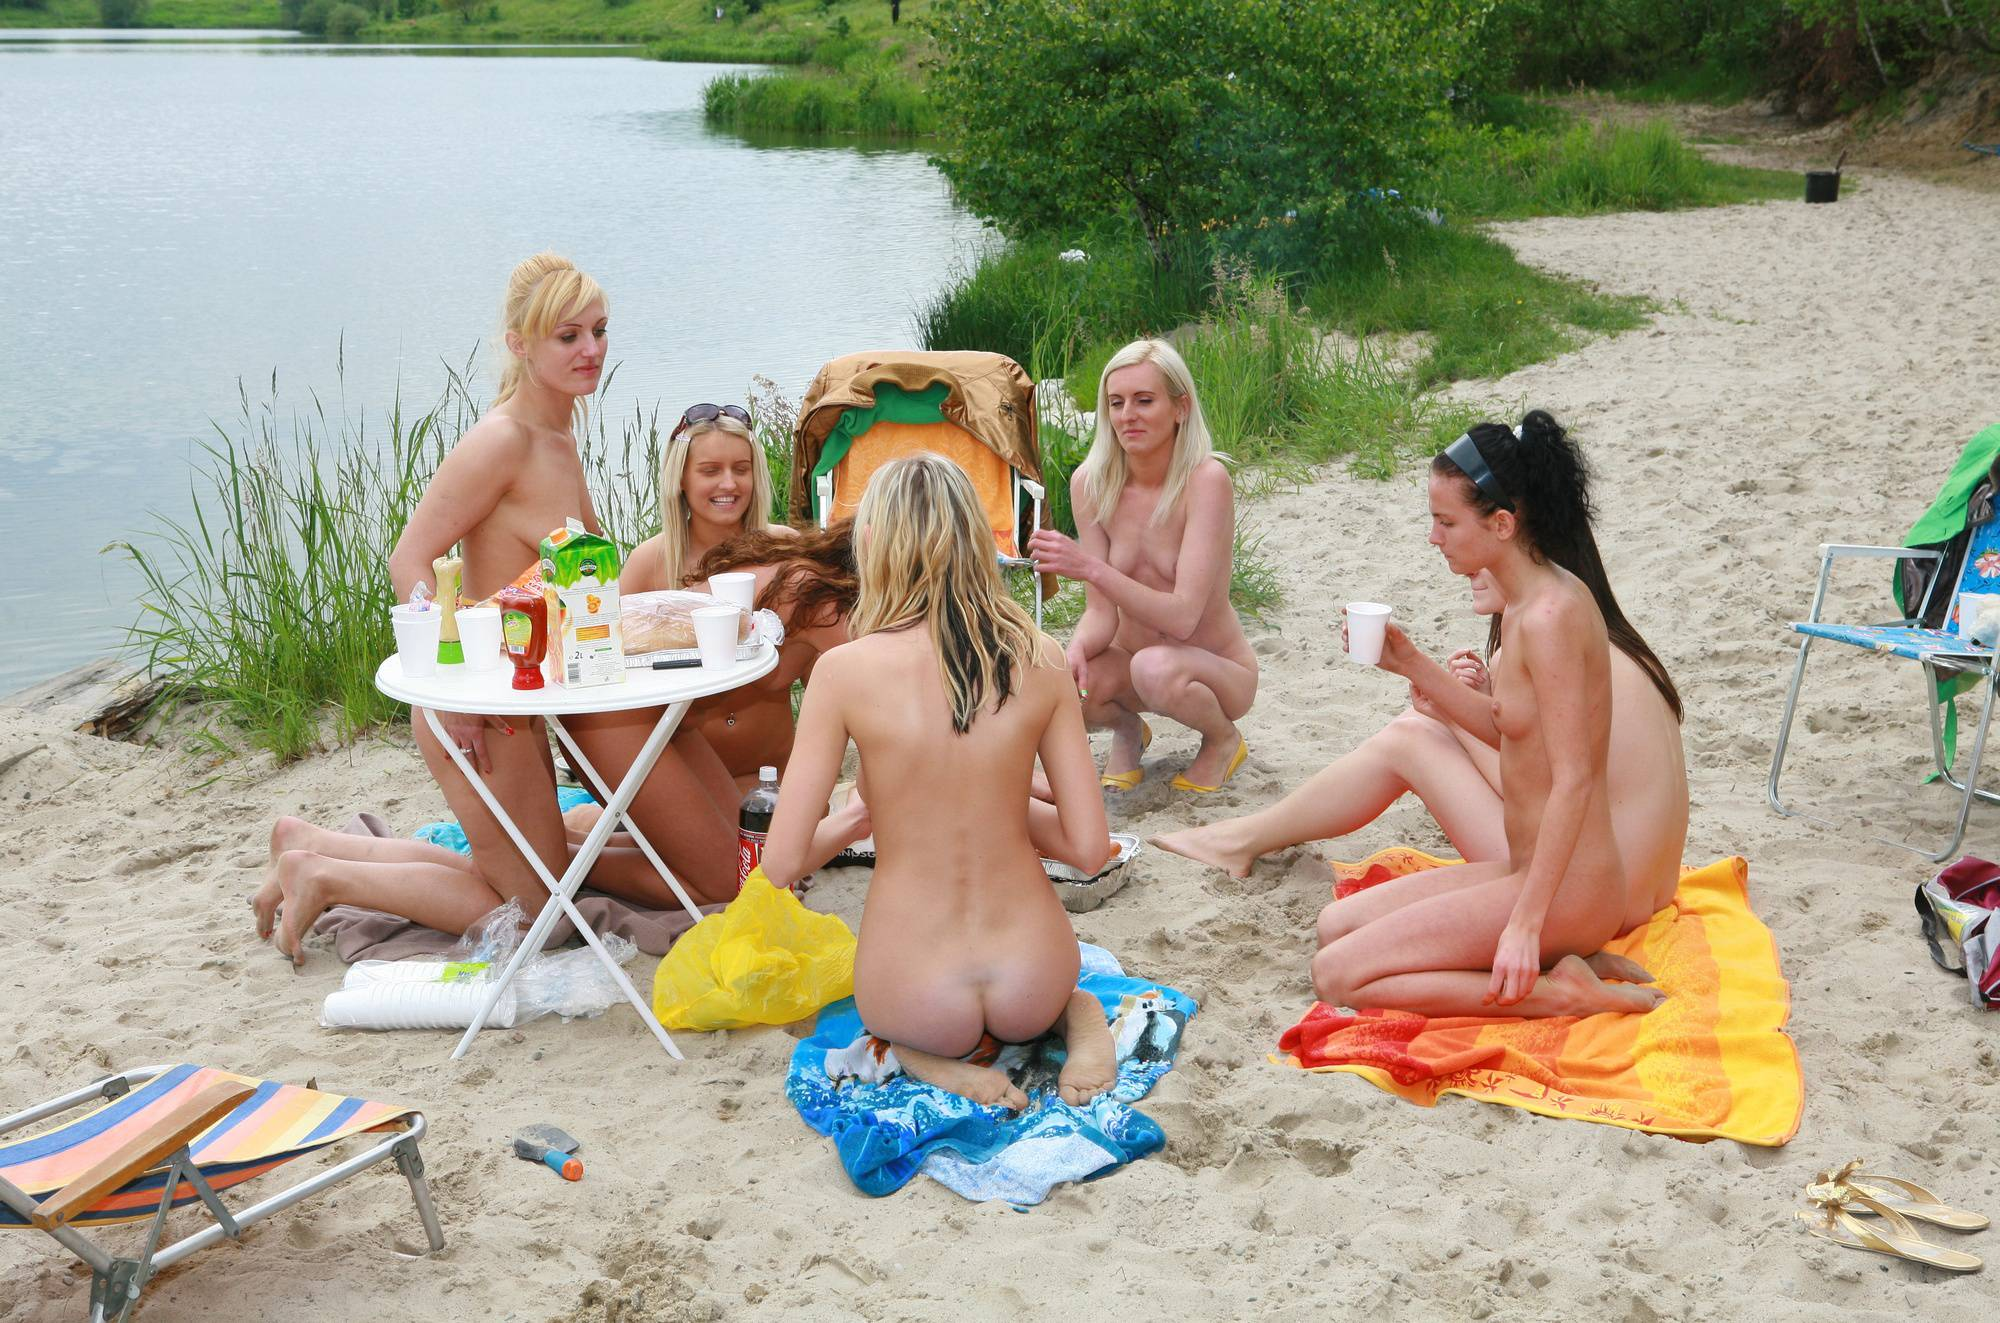 Pure Nudism Gallery Lakeside Picnic For All - 1